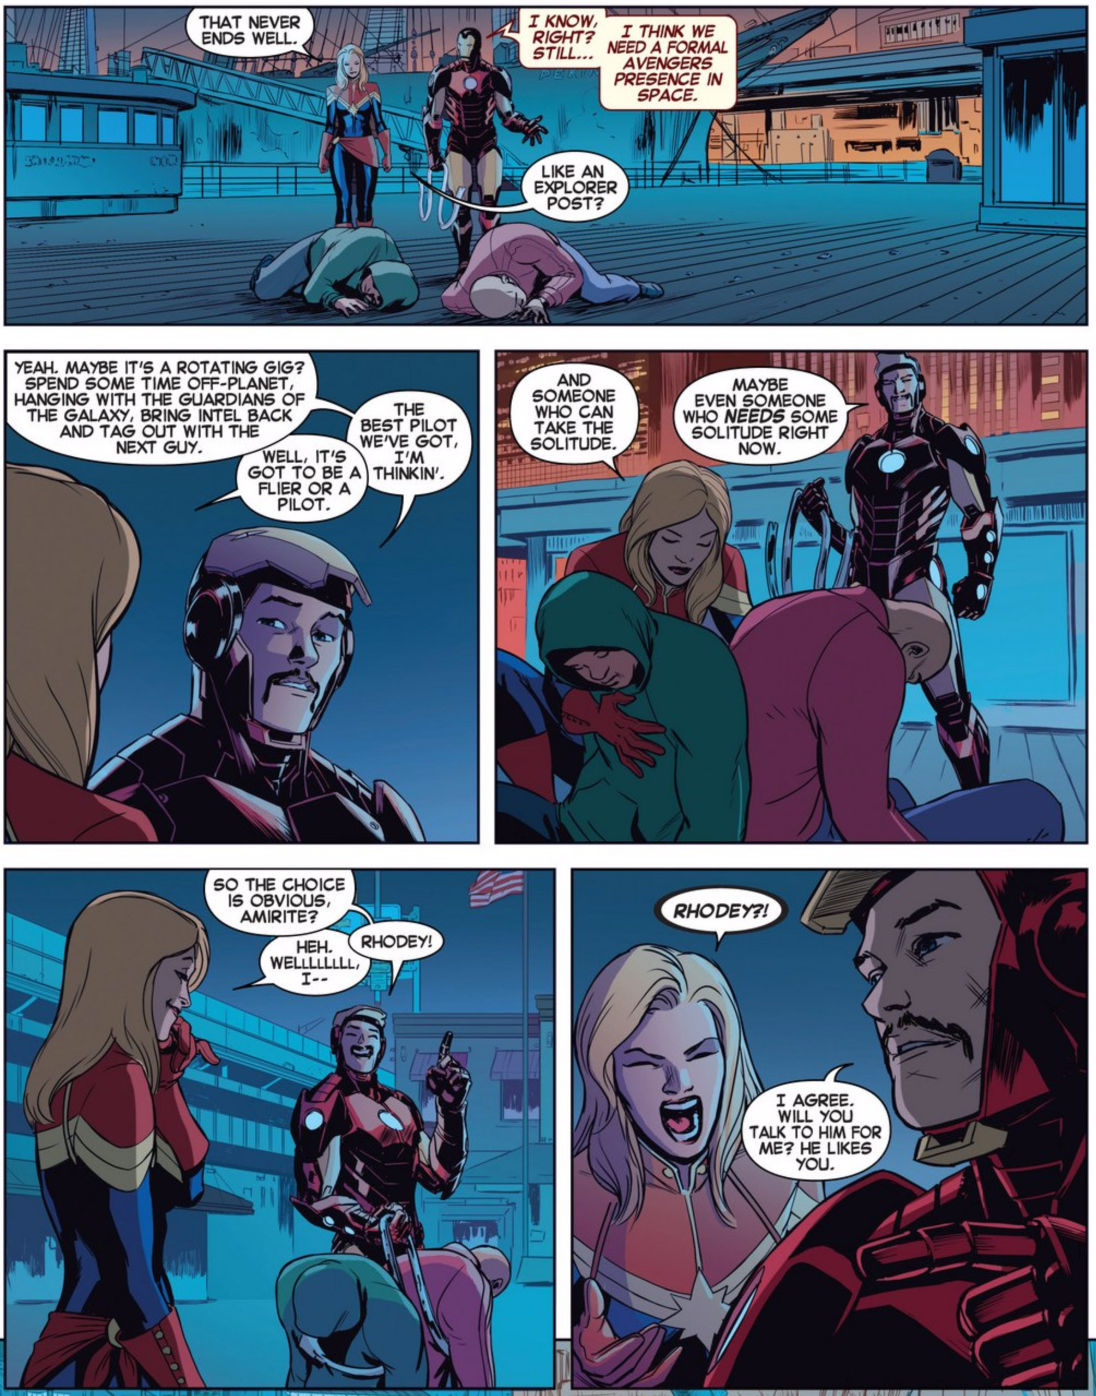 Captain Marvel #1, 12 March 2014, Tony giving Carol her place as the job of an Avenger in Space